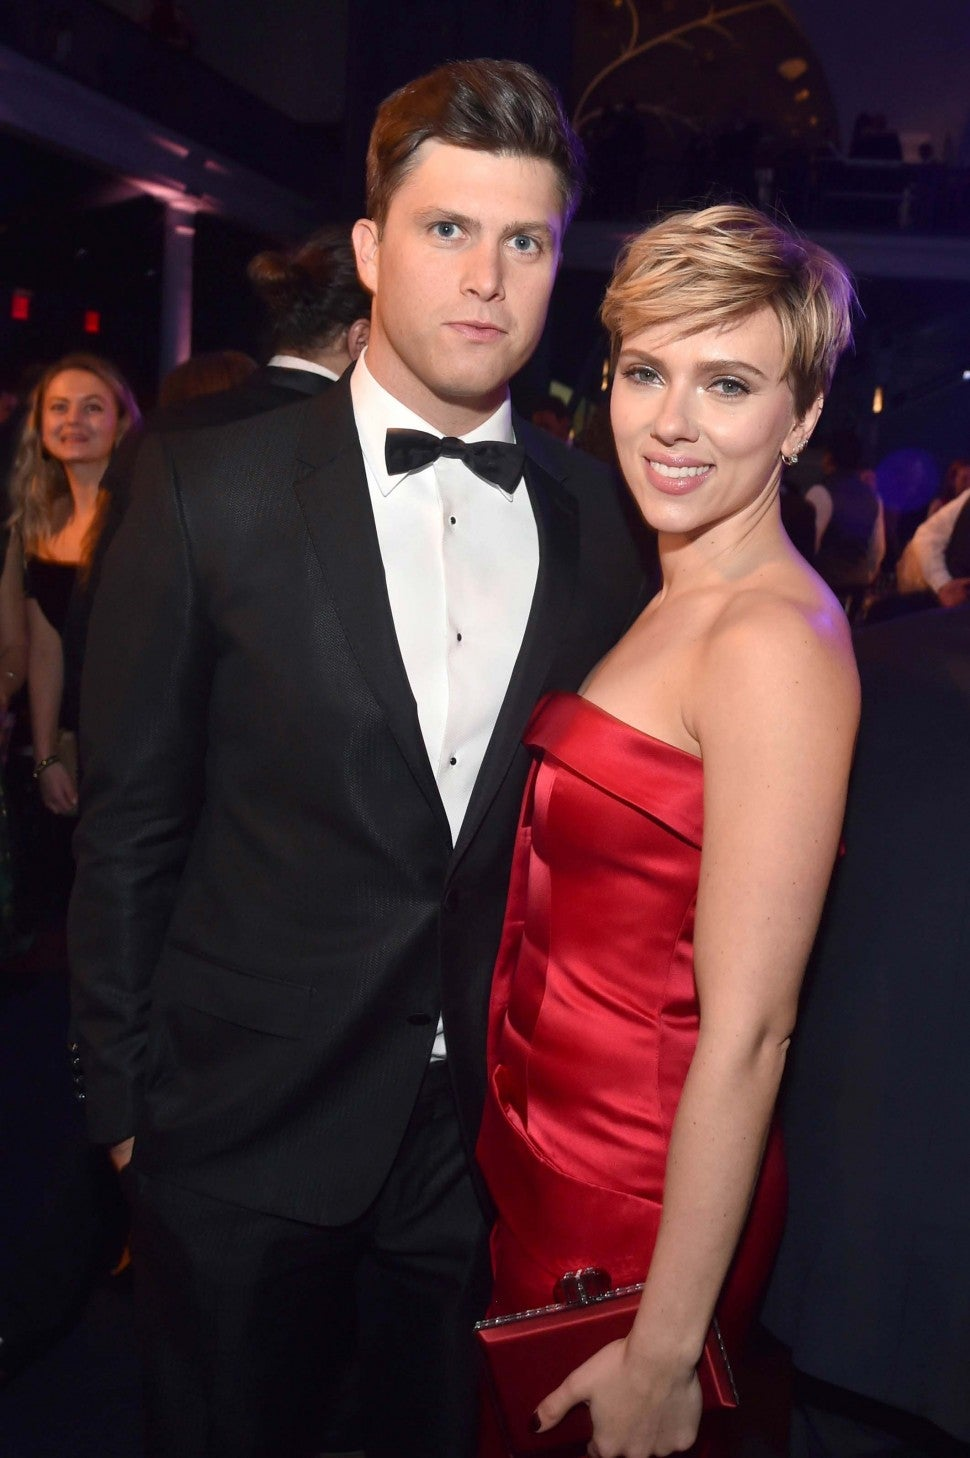 Colin Jost and Scarlett Johansson At the American Museum of Natural History Gala in New York City